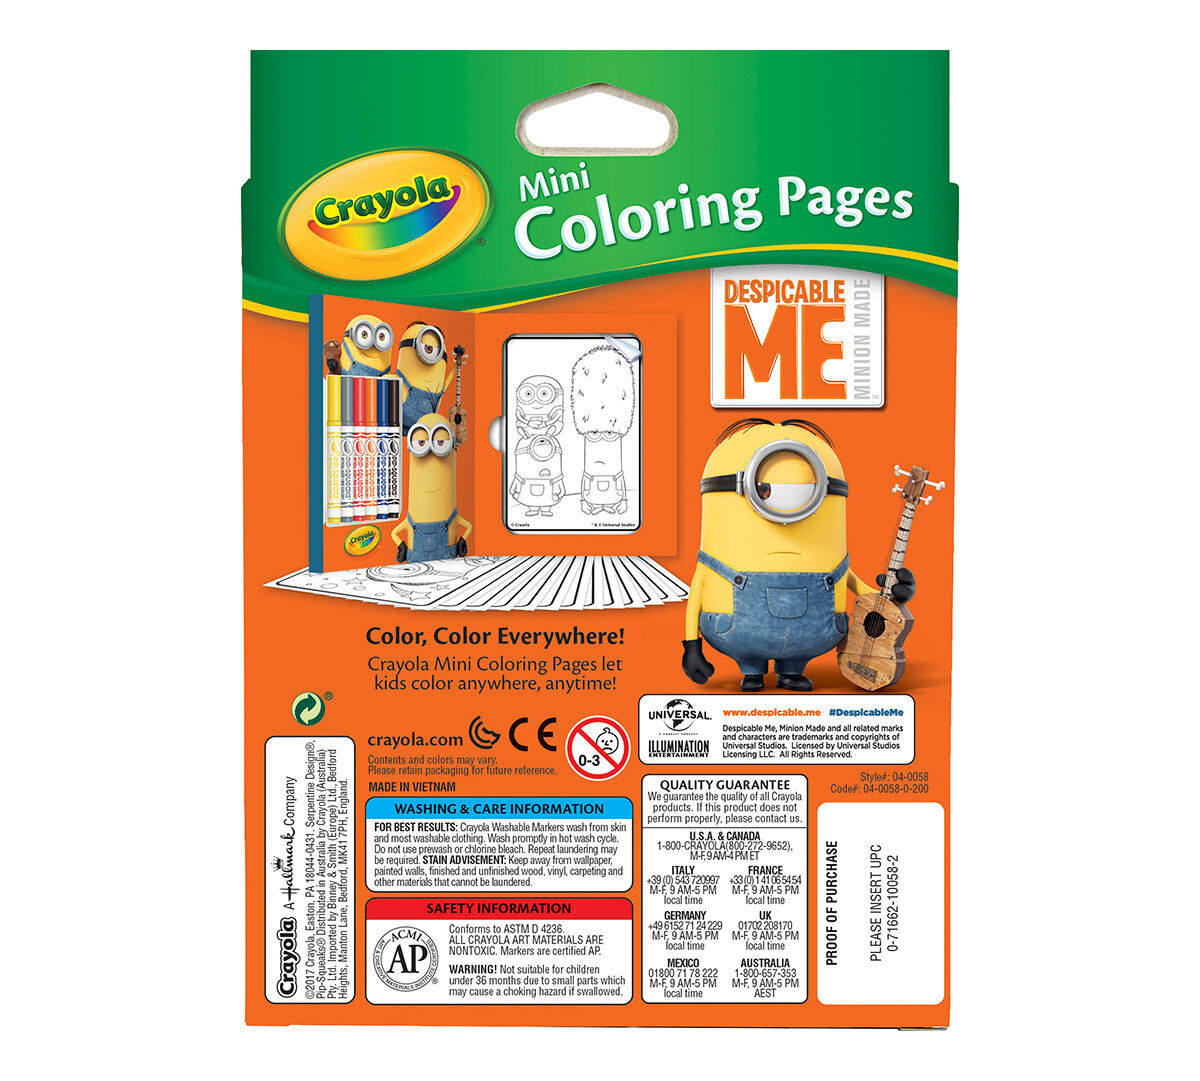 mini coloring pages despicable me